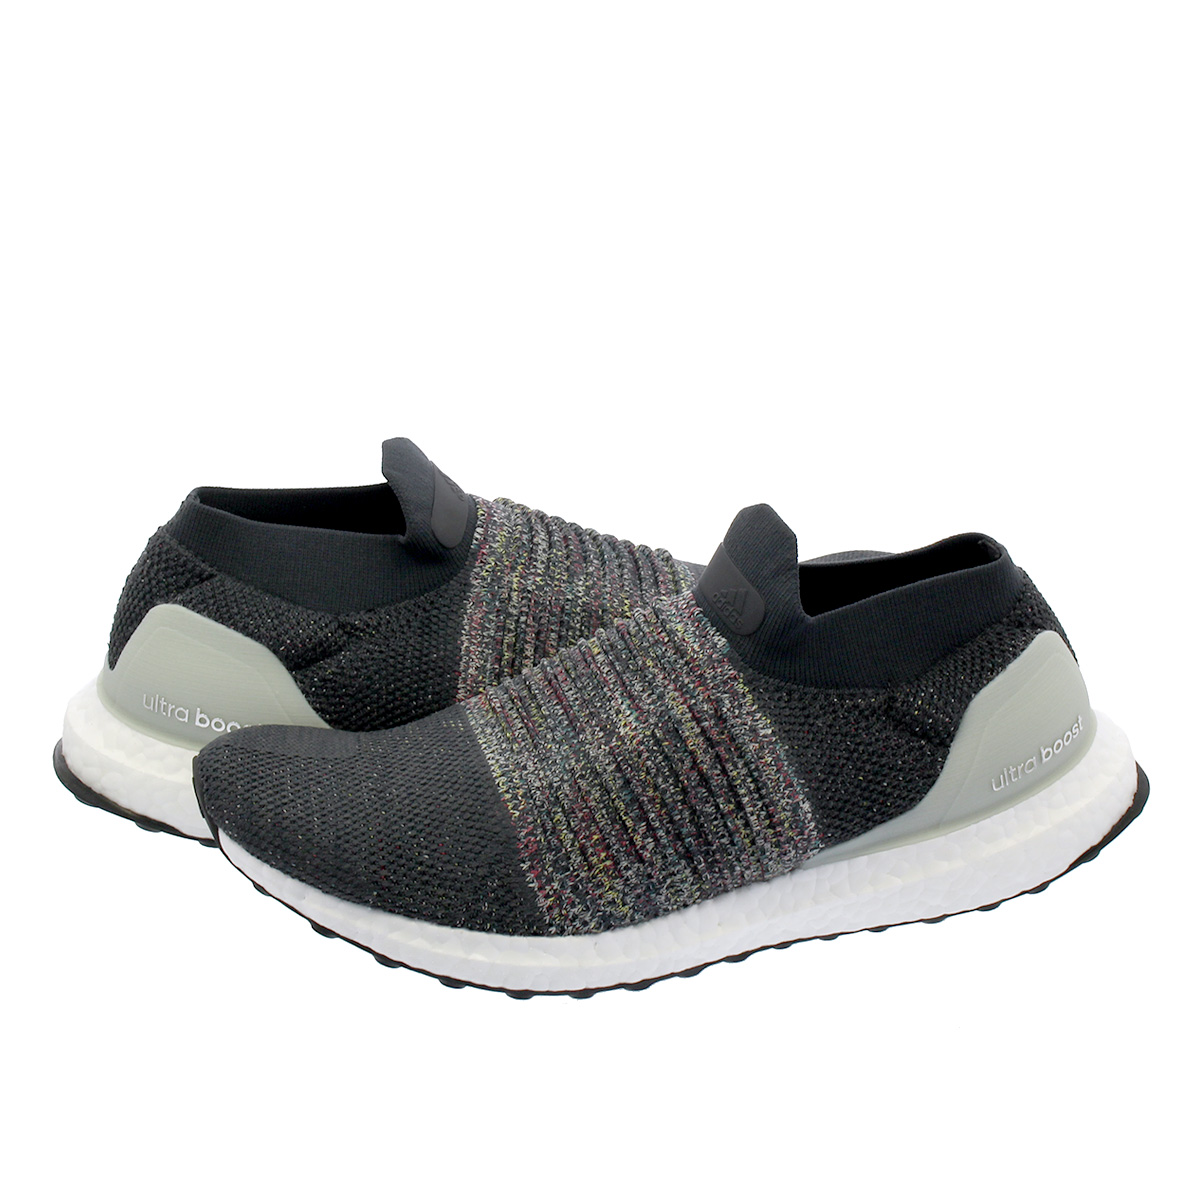 scarpe ultraboost laceless 50% di sconto sglabs.it